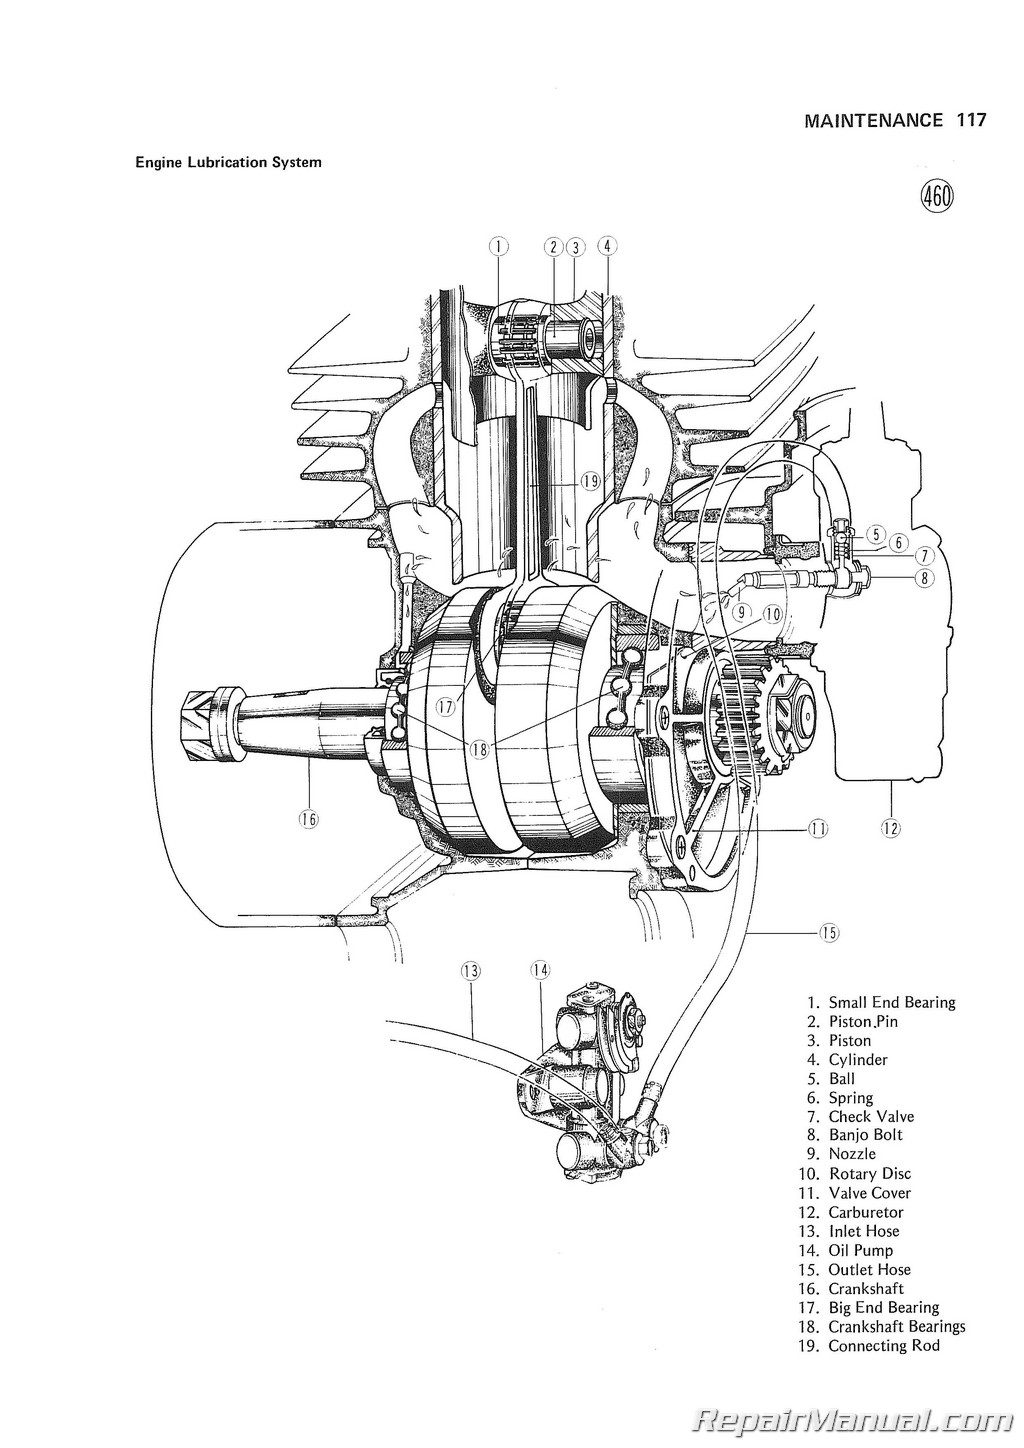 Ke175 Wiring Diagram Simple Detailed 78 Yamaha Dt 100 Motorcycle Service Manual 1976 Kawasaki Ke175b1 A 400 Amp